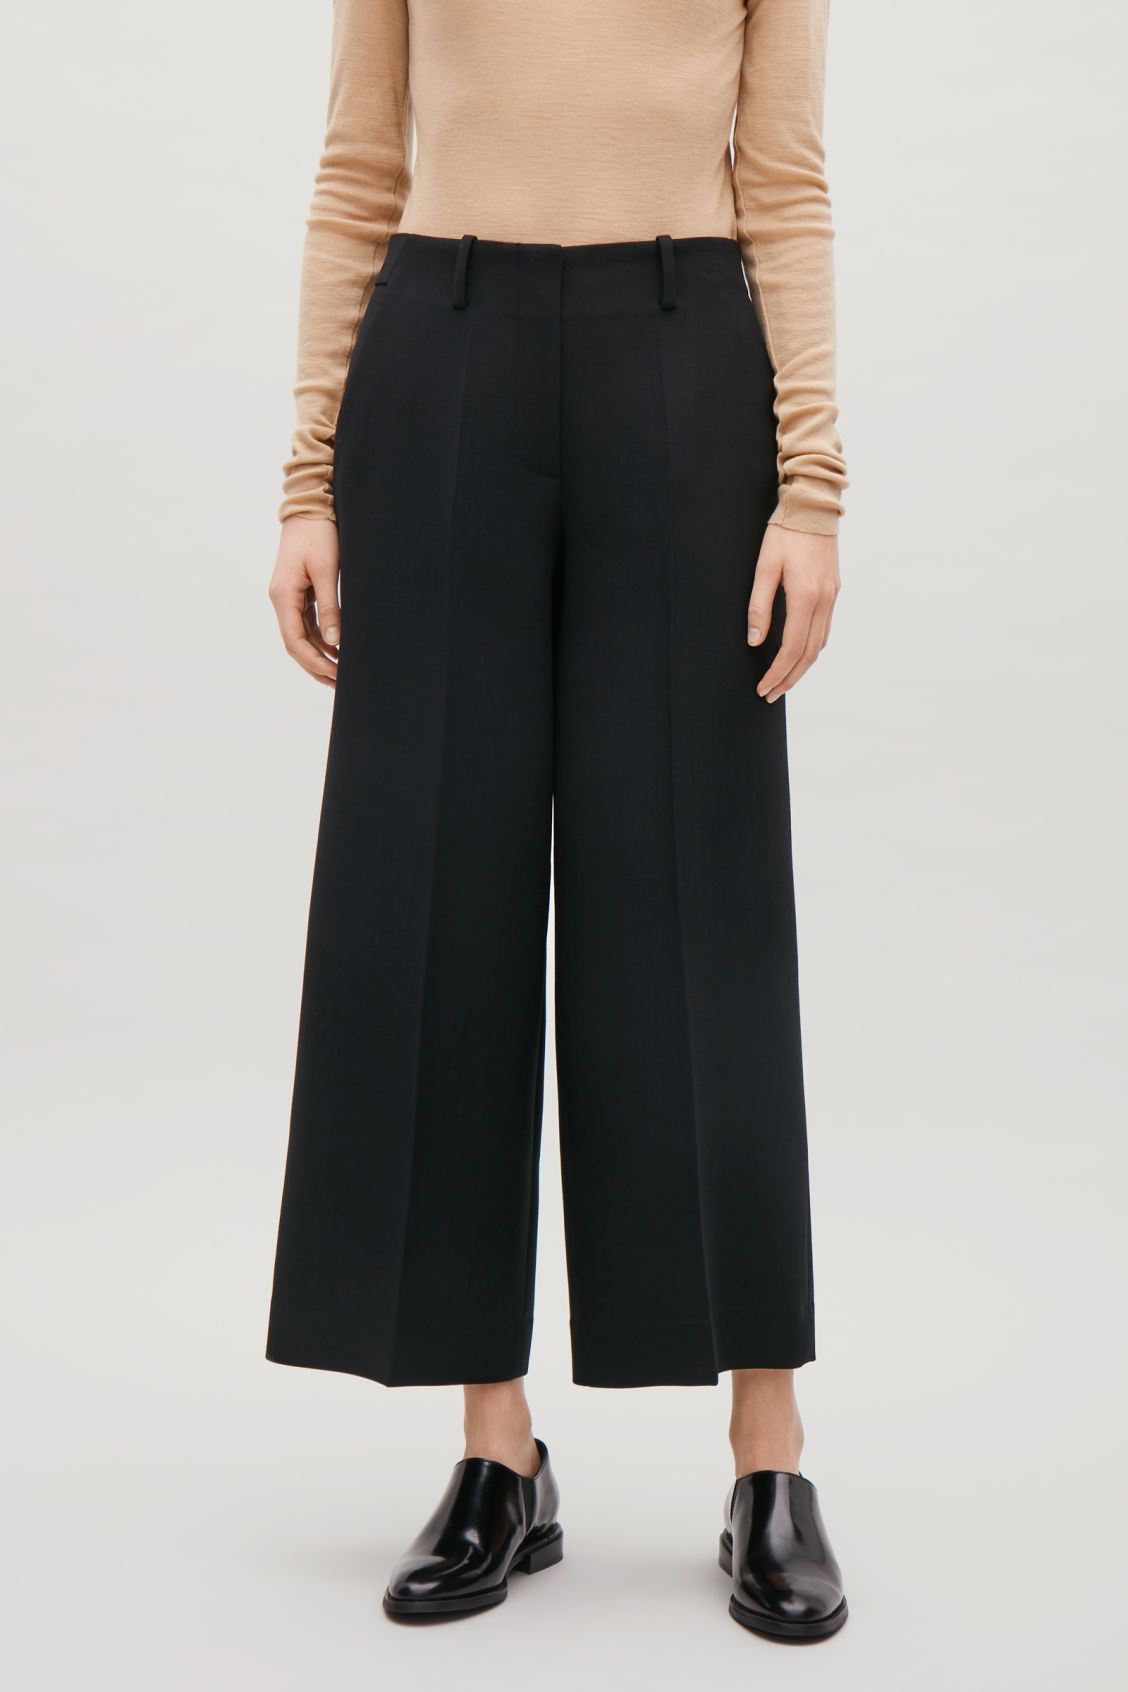 5ae90ce1d223a Model side image of Cos tailored wool culottes in black